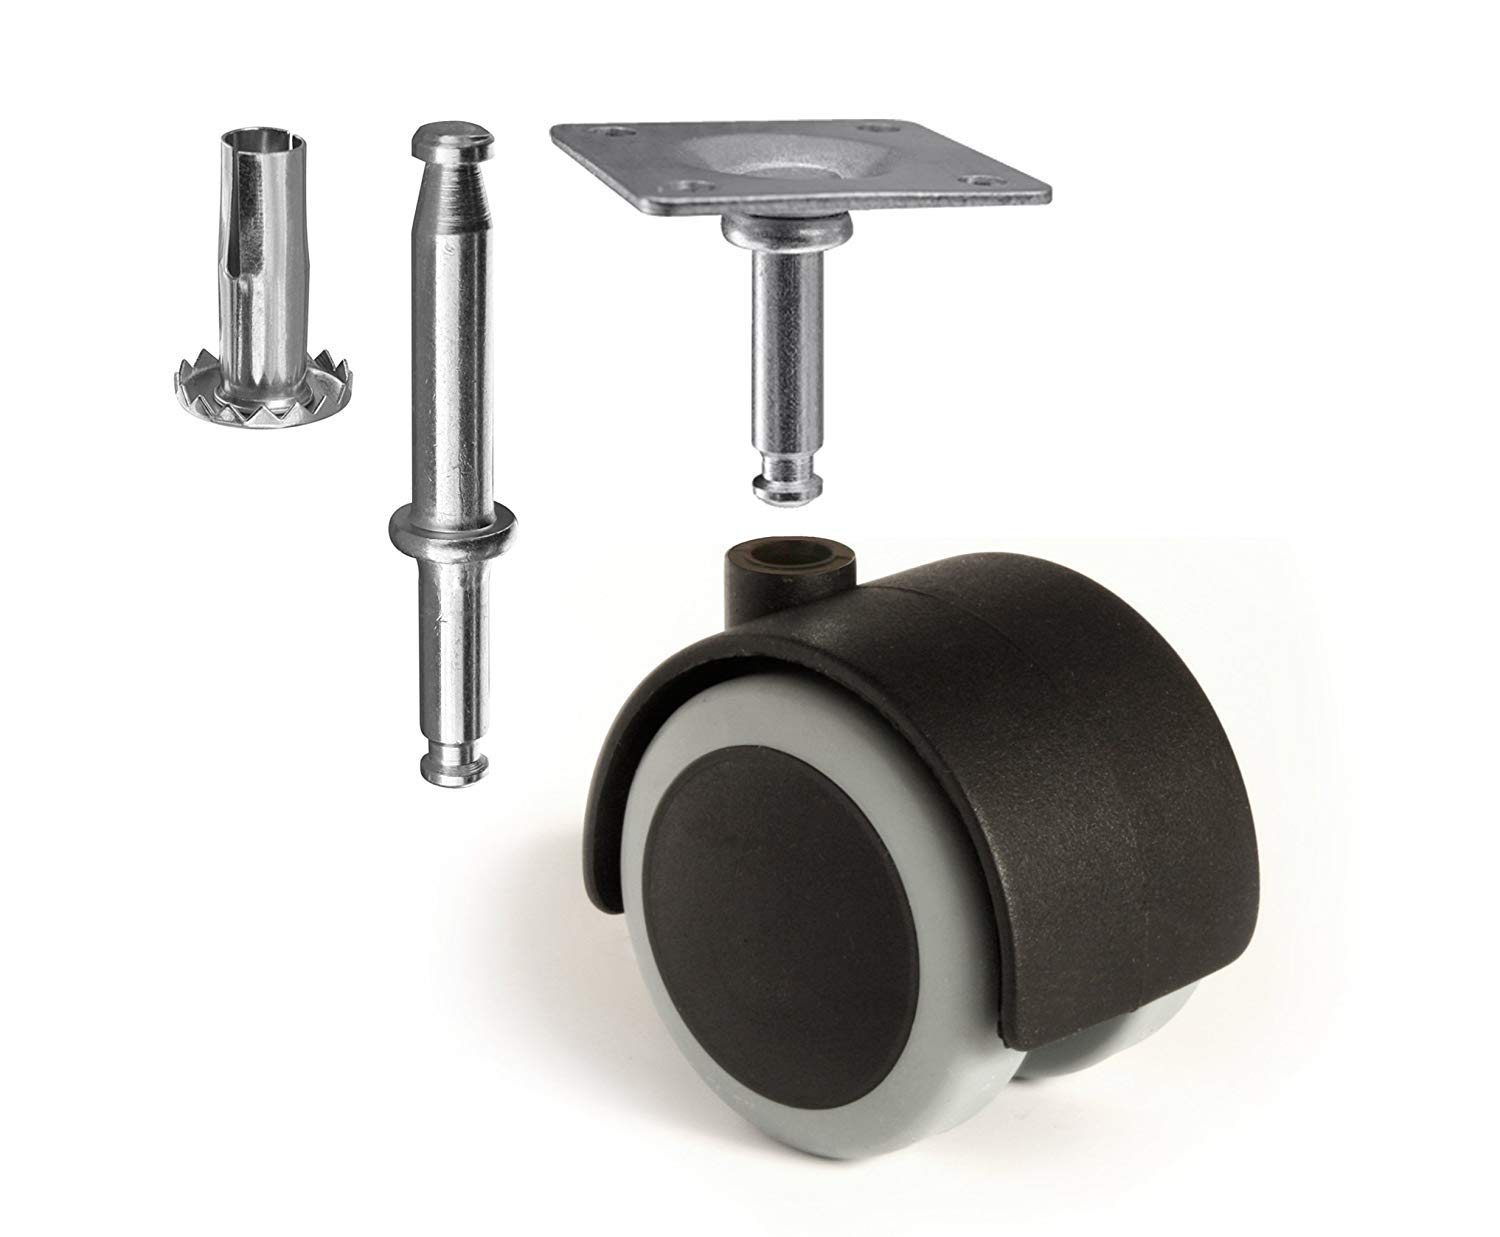 Slipstick CB681 2 Inch Floor Protector Rubber Caster Wheels (Set of 4) 5/16 Inch Stem or Top Plate Mounting Options - Black/Gray (Set of 8)